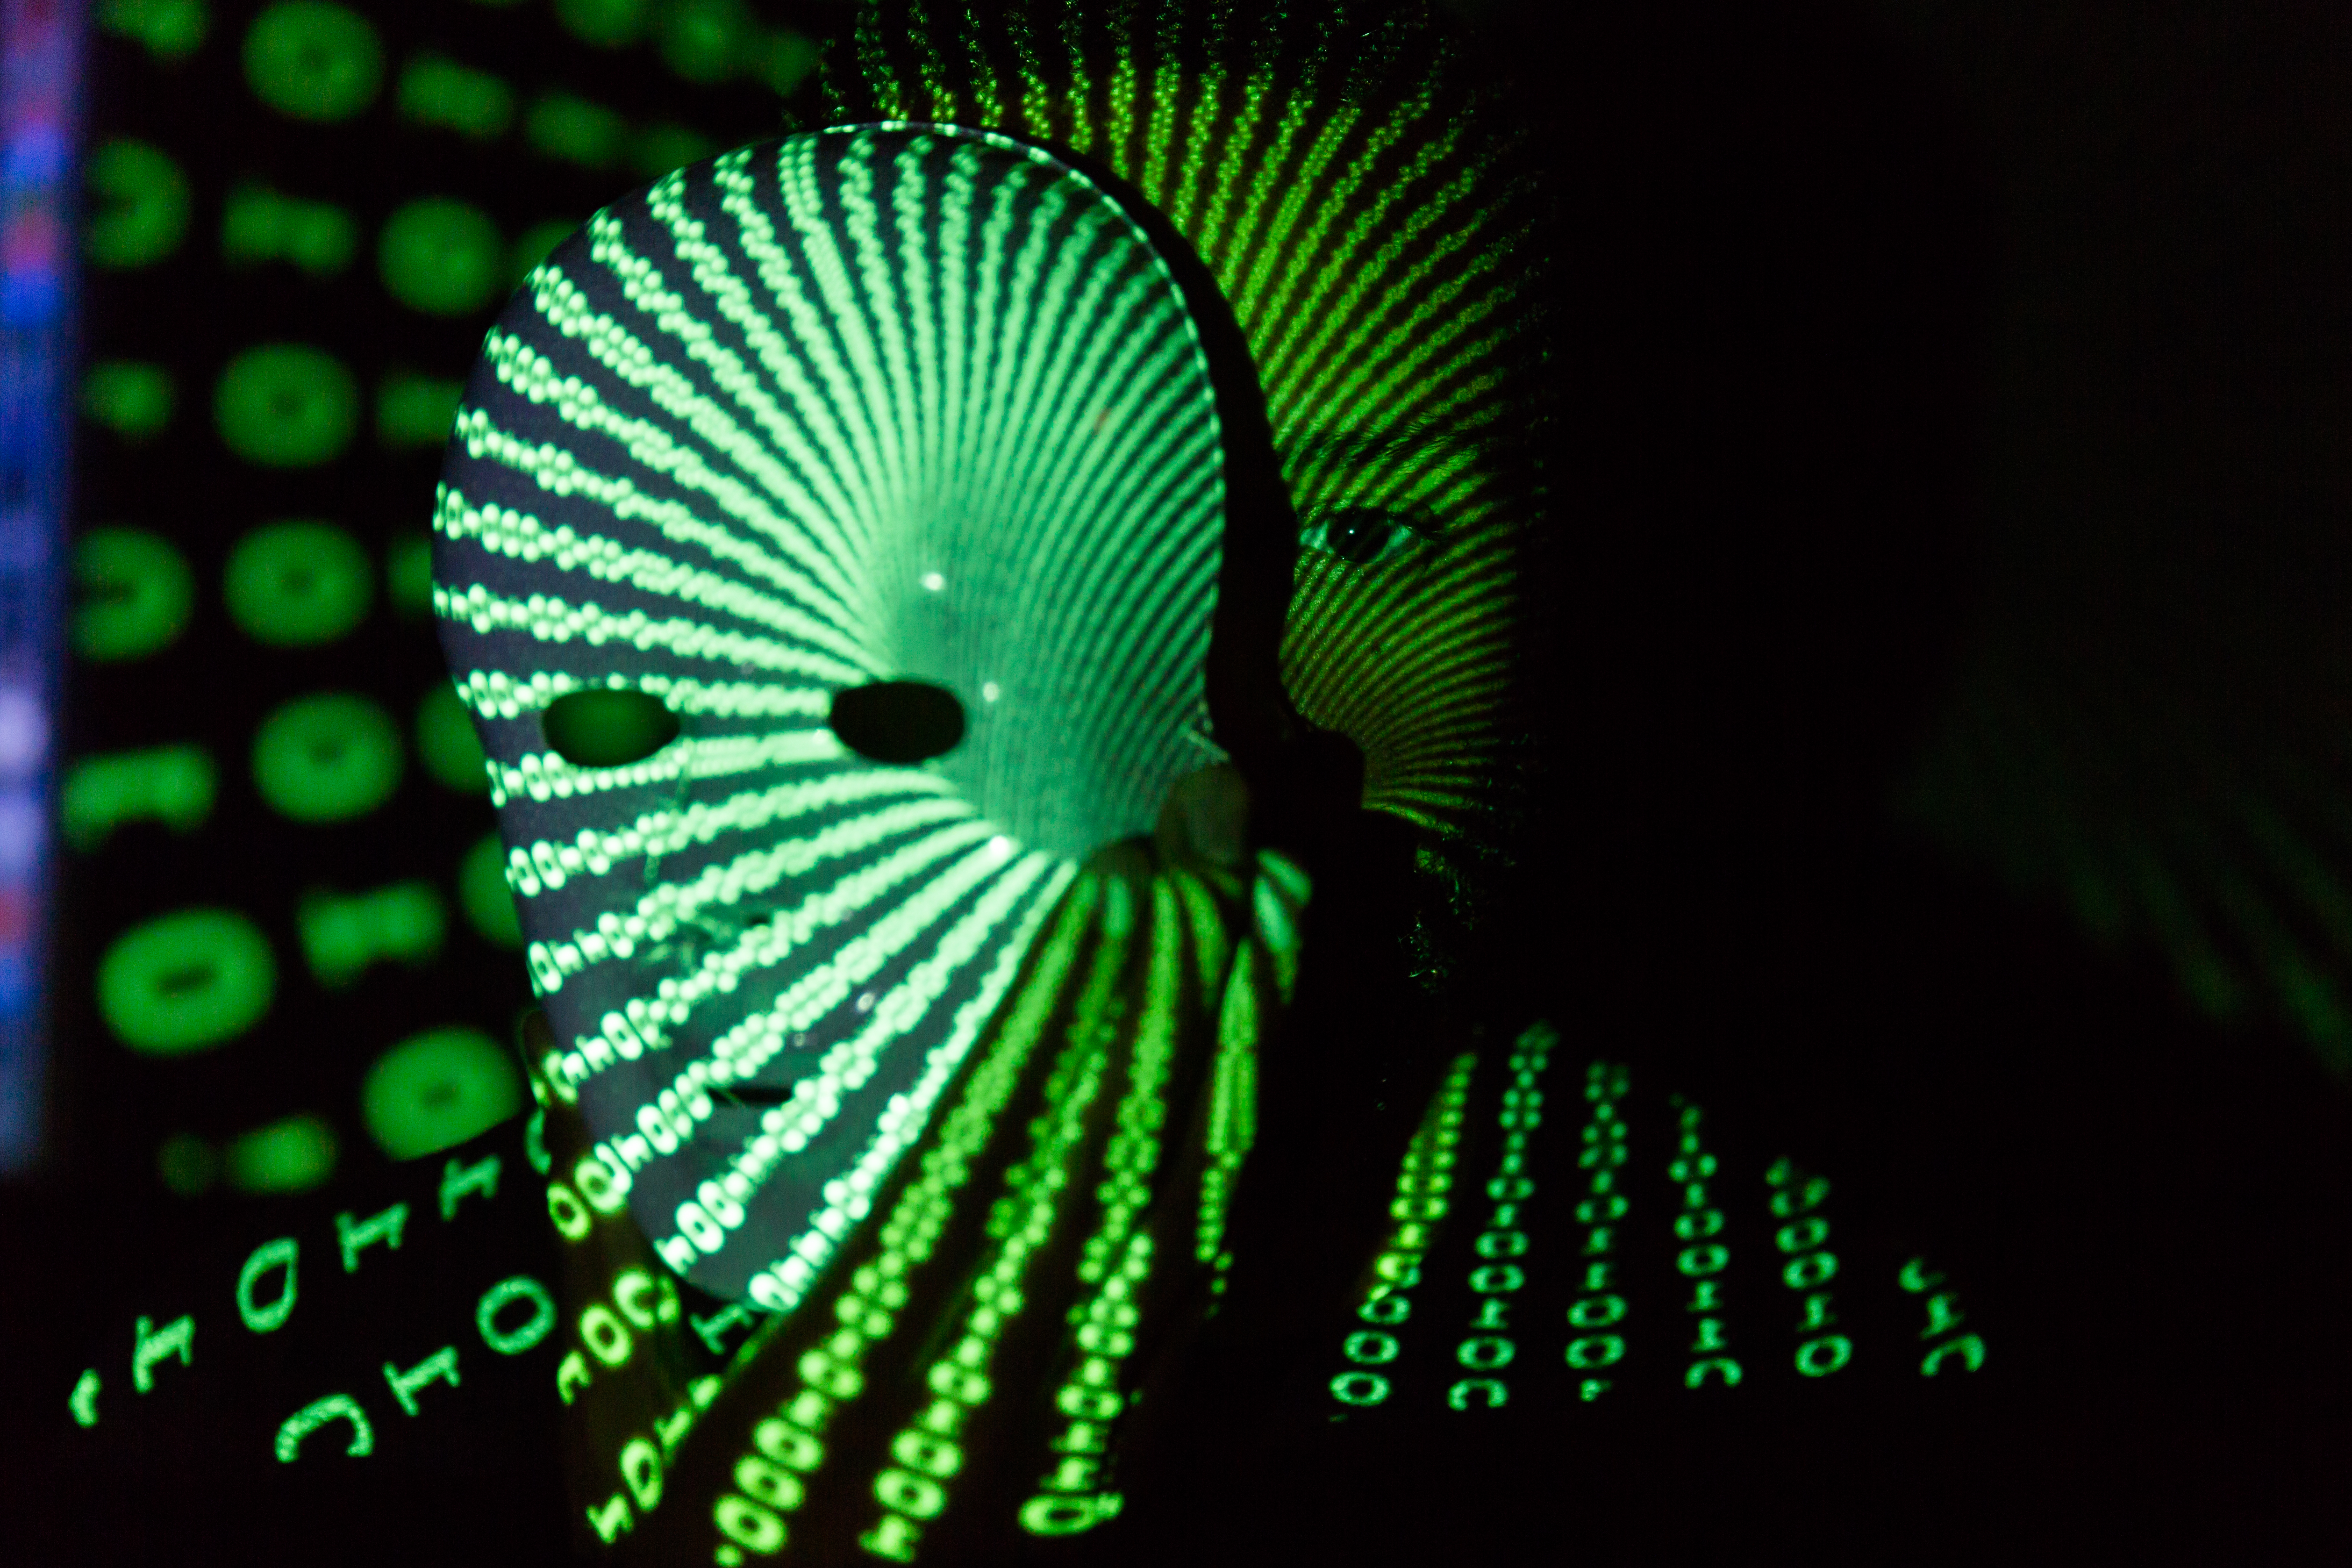 An illustration of a man wearing a mask with green ones and zeroes projected over his face. Ransomware will likely get worse and data breaches aren't going anywhere in 2018. But there's still plenty you can do to protect yourself.